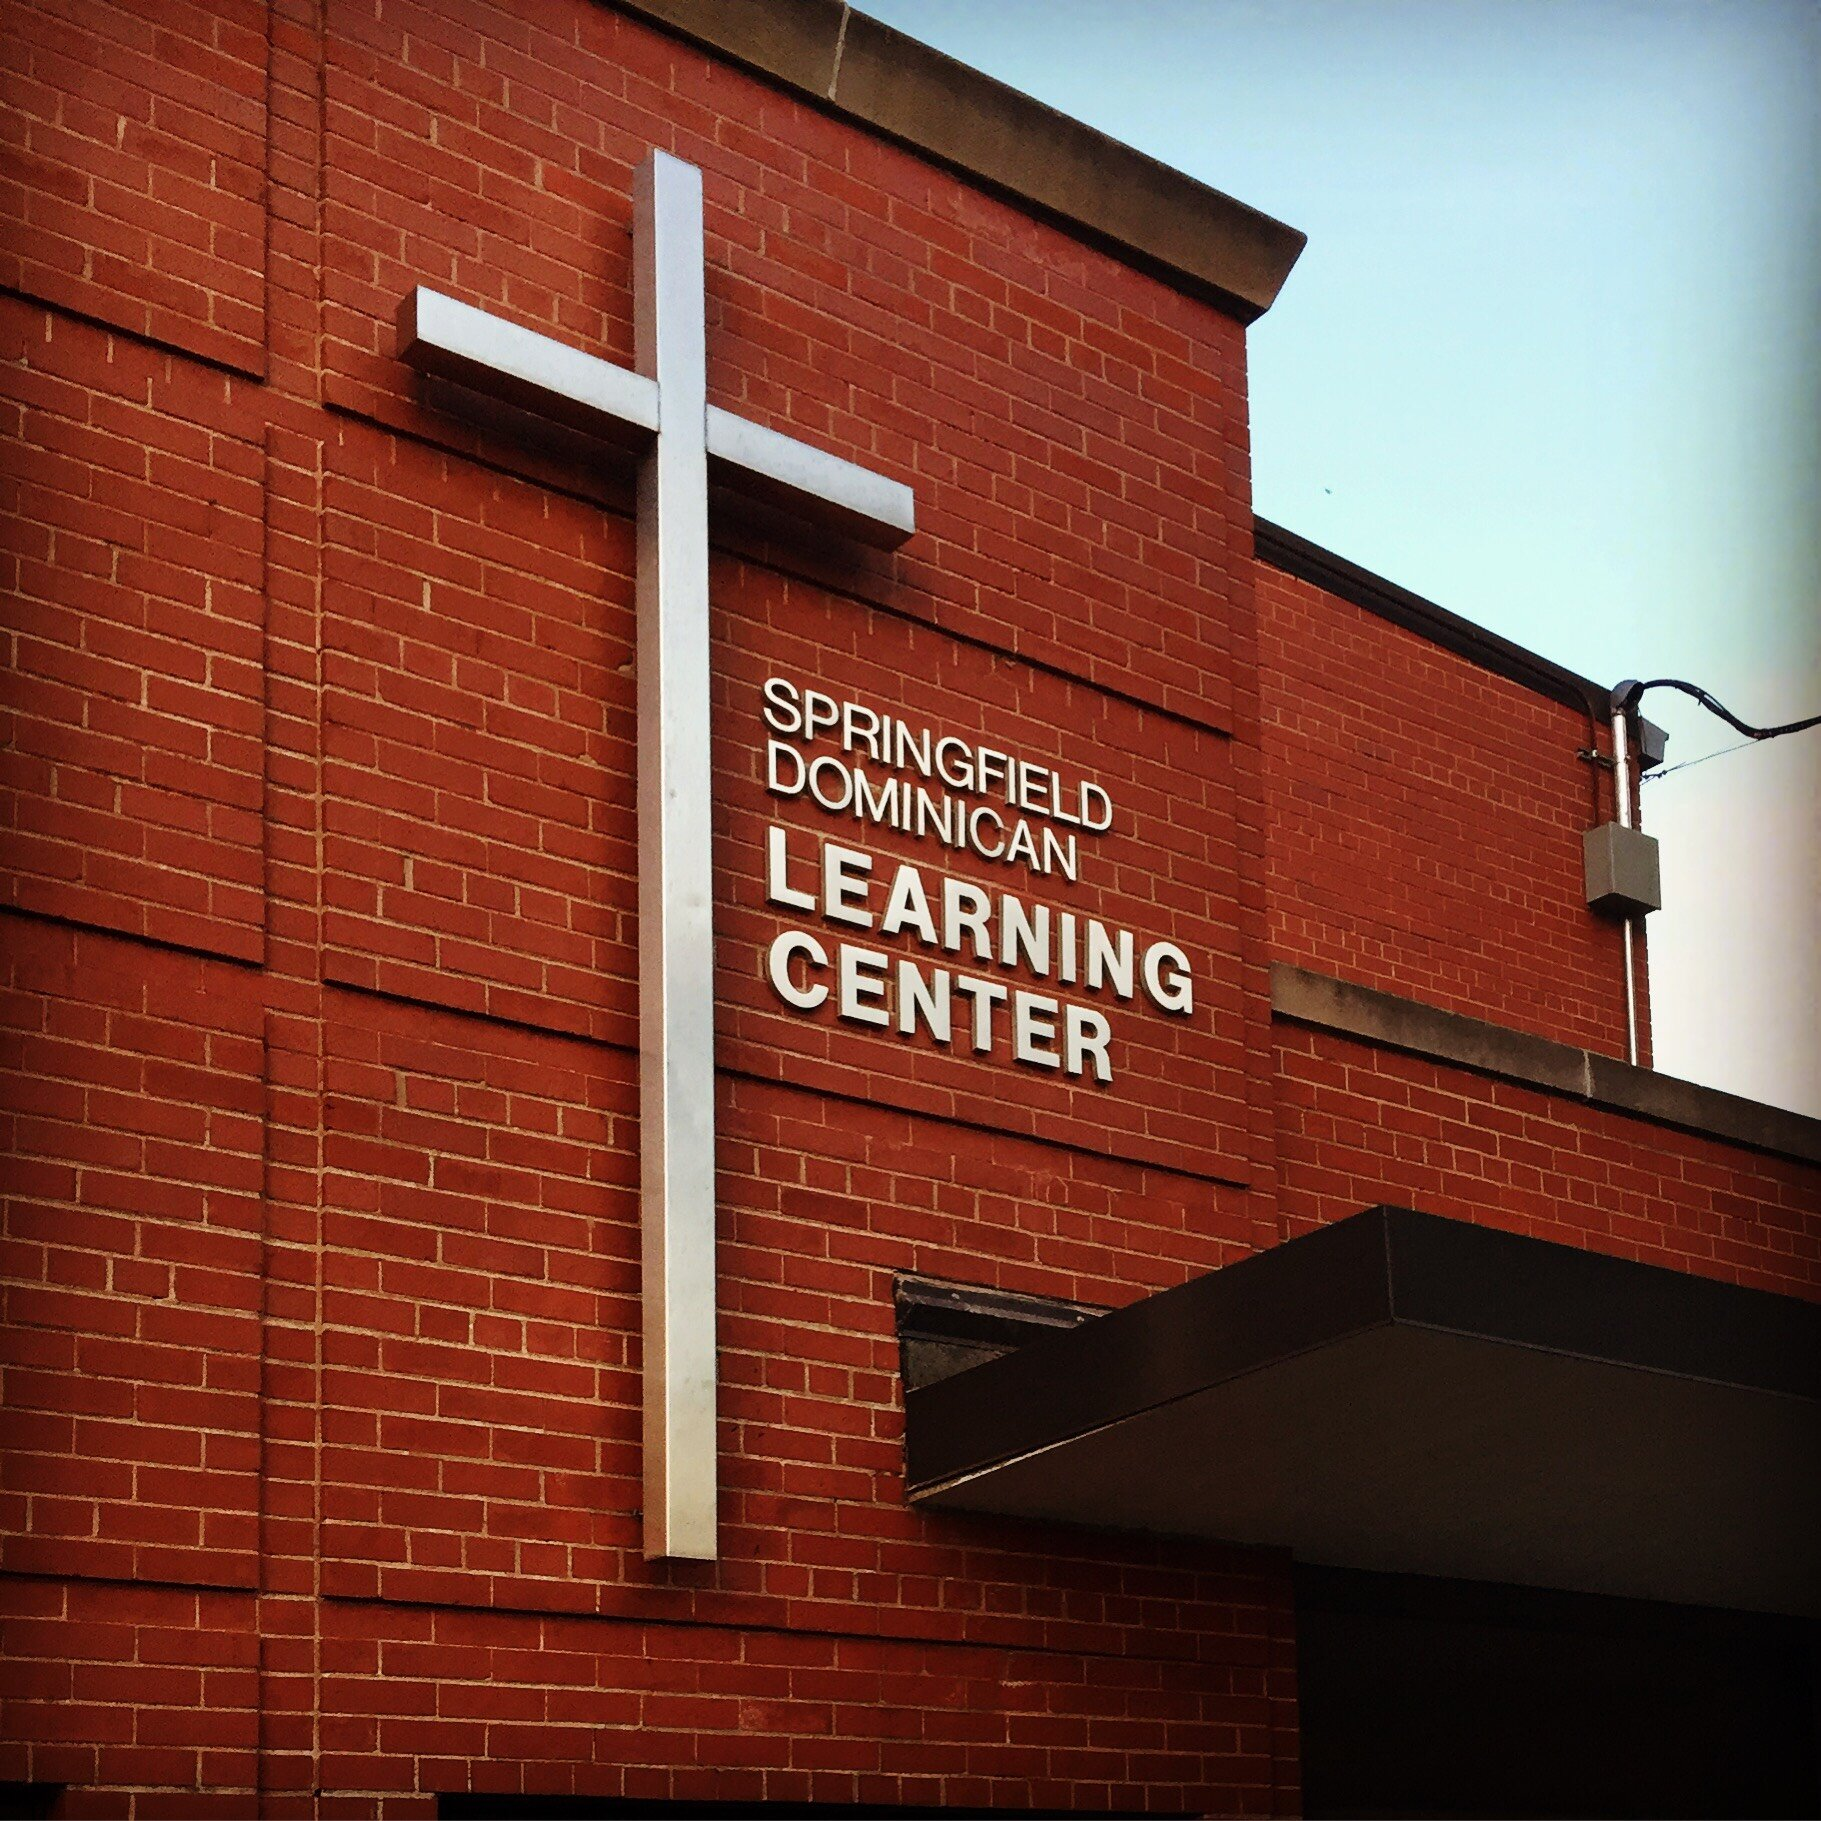 Springfield Dominican Learning Center